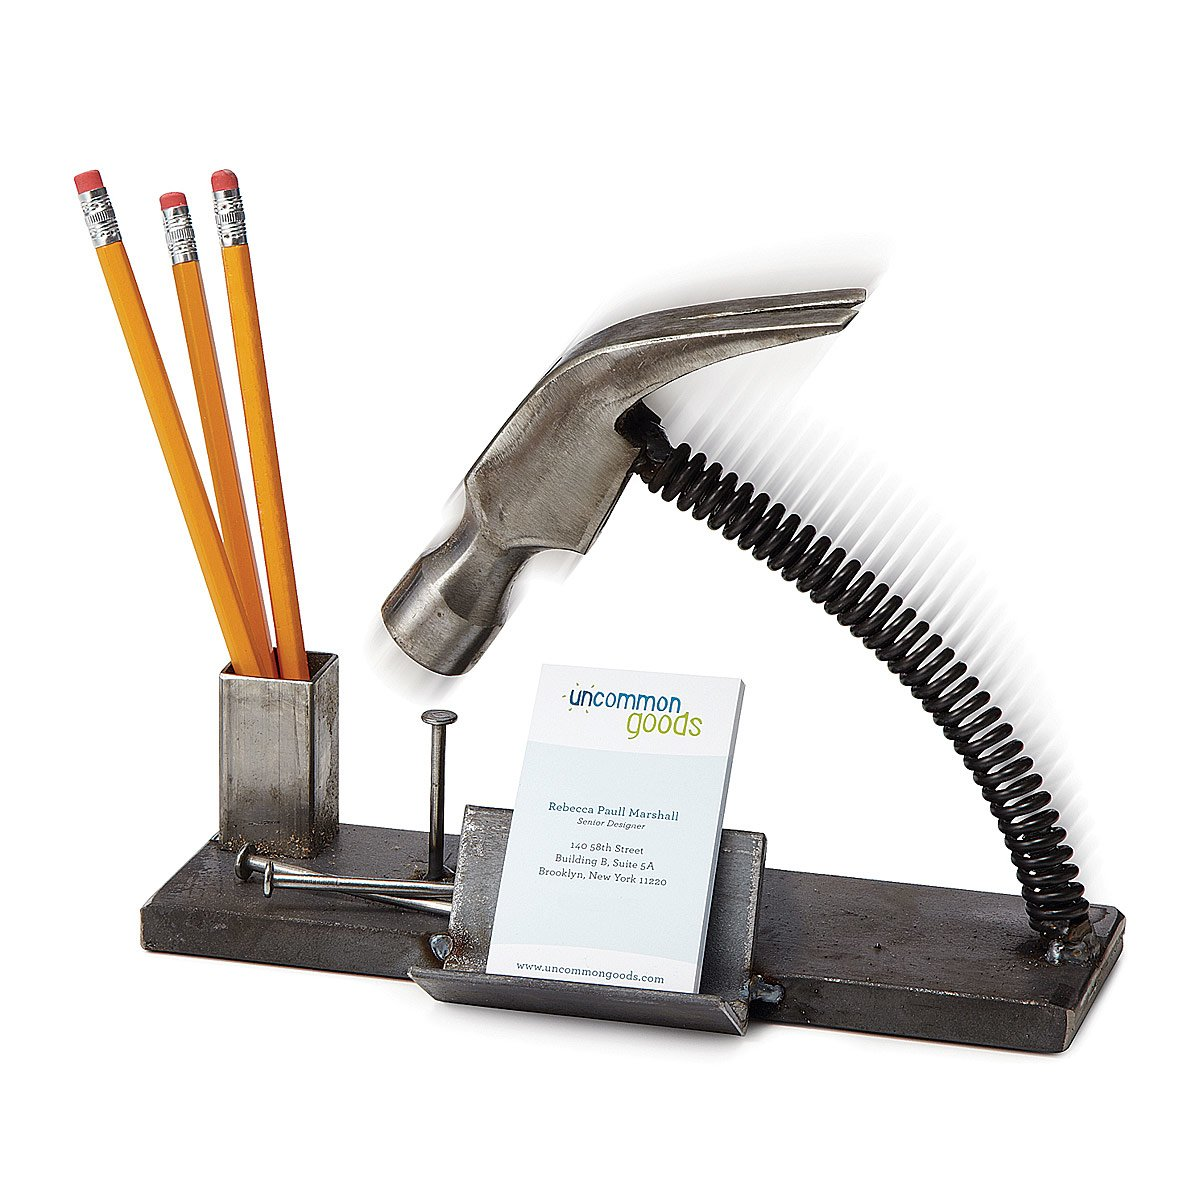 Nailed it desk organizer funny office art uncommongoods - Desk organization accessories ...